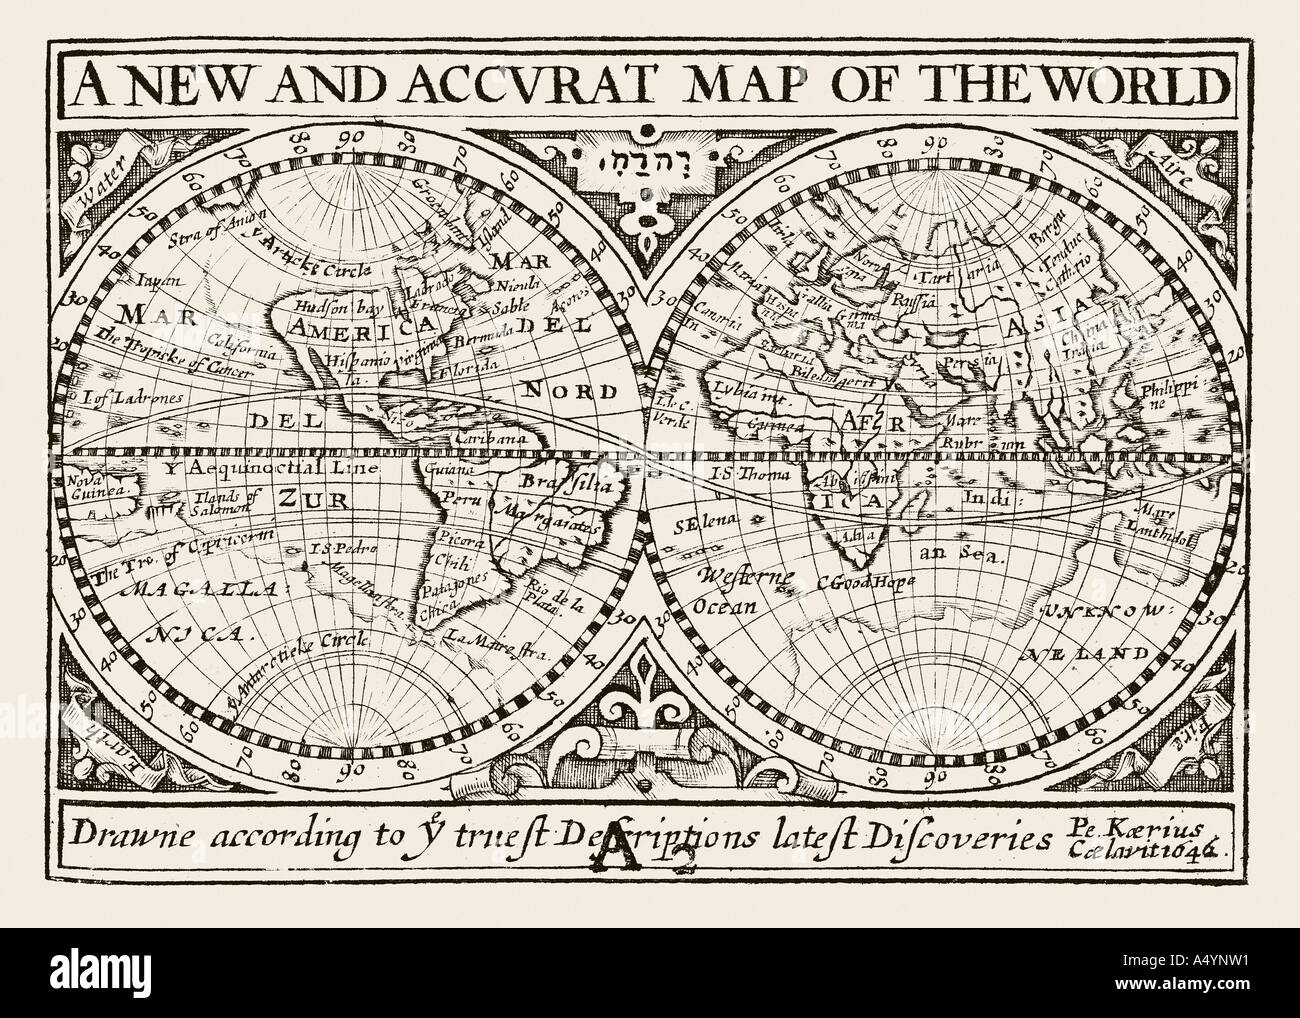 Antique map of the World by Petrus Kaerius 1646 from John Speed Prospect of the most Famous Parts of the World 1675 Stock Photo